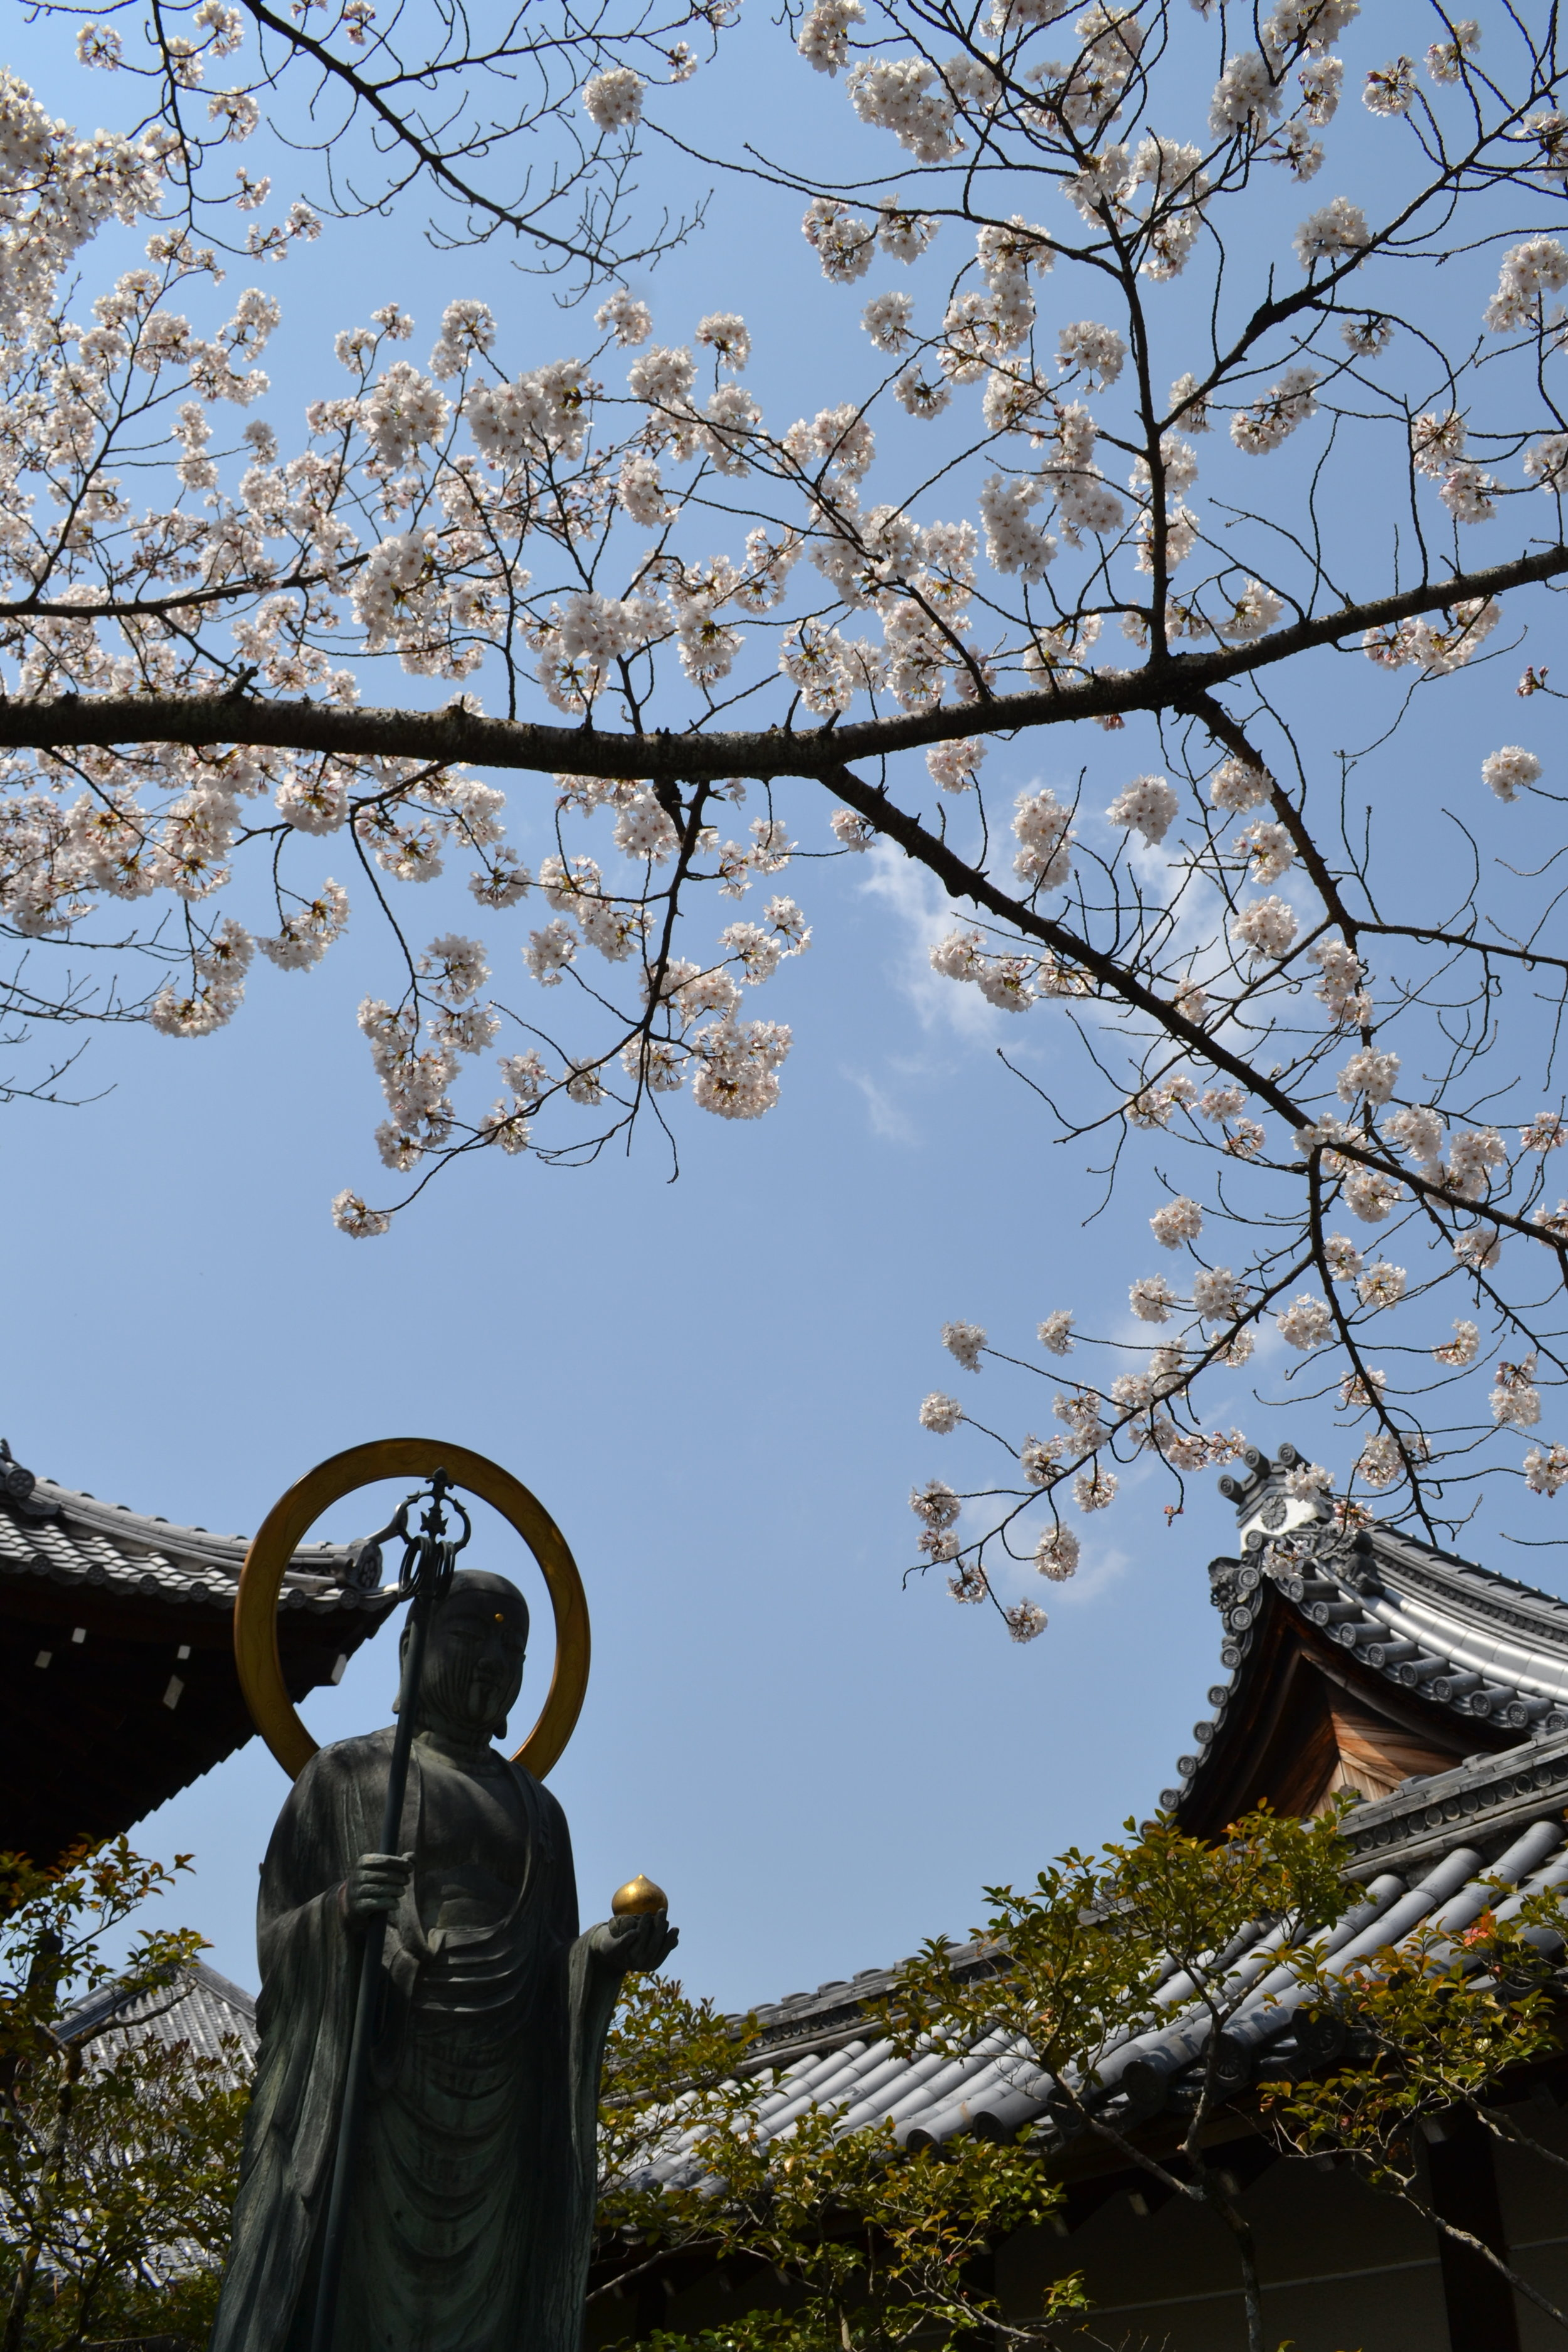 I quite liked the view of the cherry blossoms shadowing over the Buddhist statue.